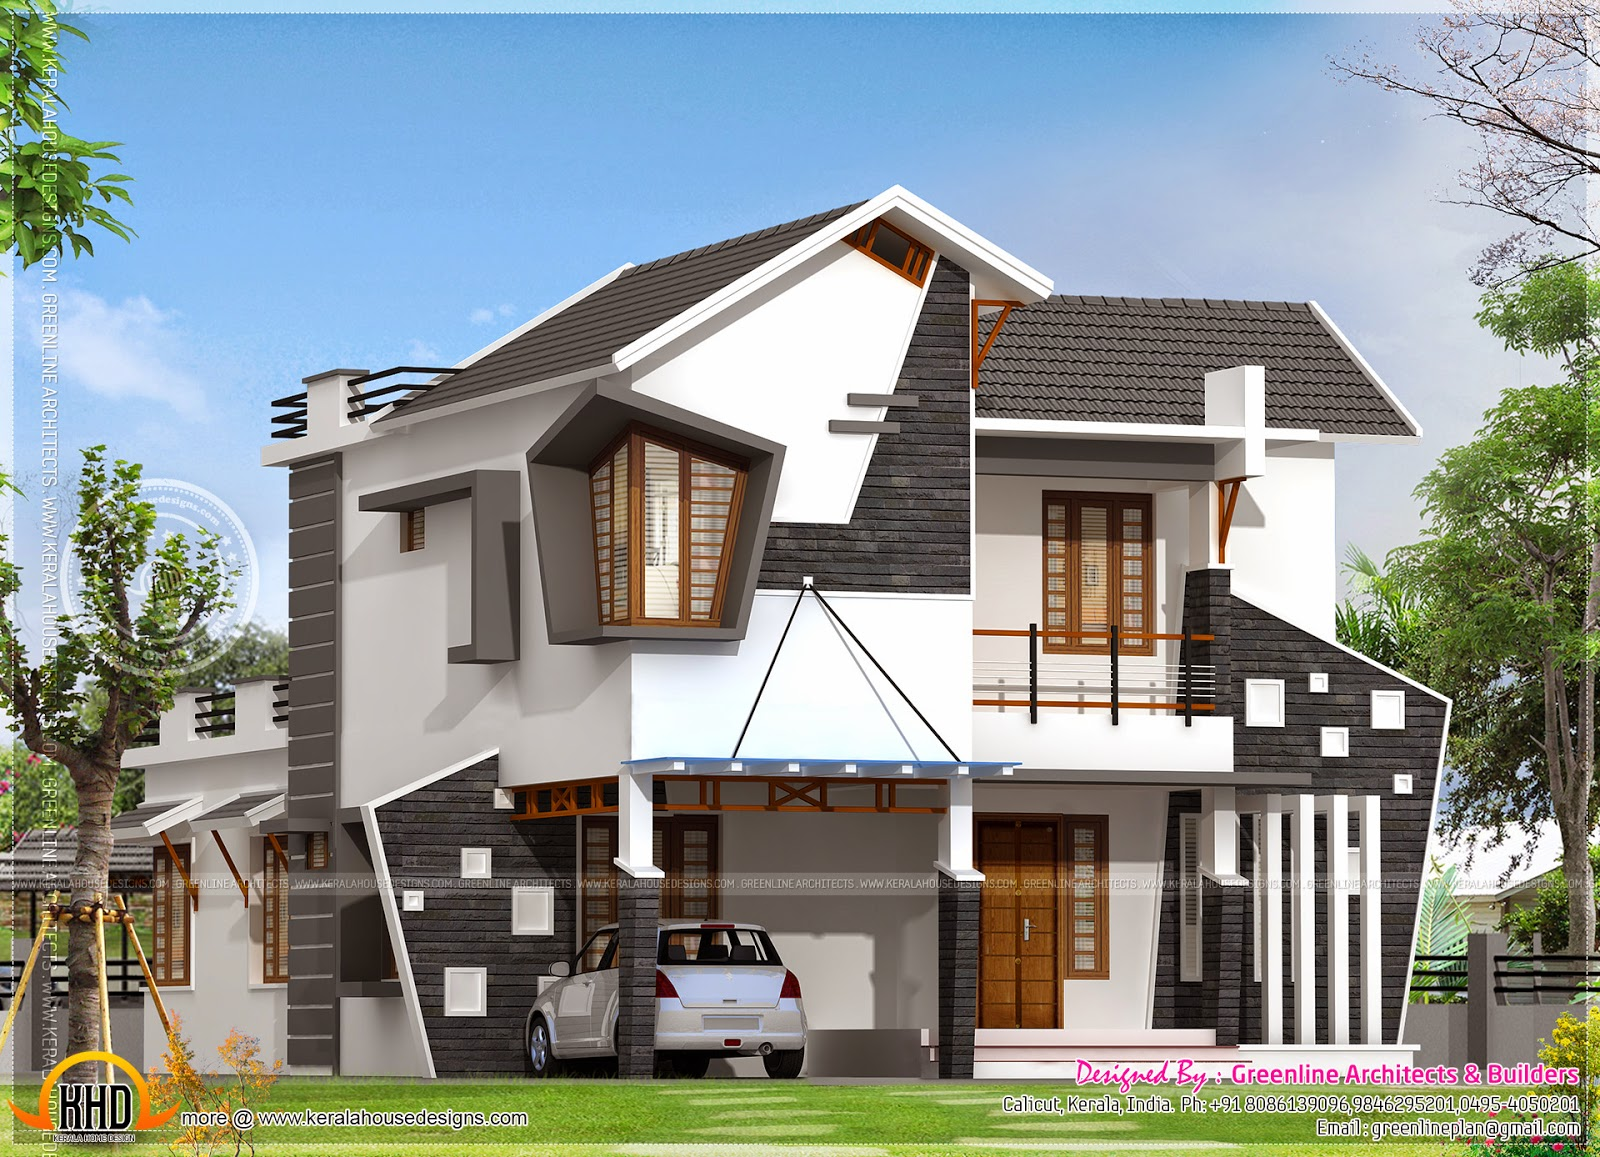 Unique house exterior in 2154 square feet kerala home for Awesome home design ideas